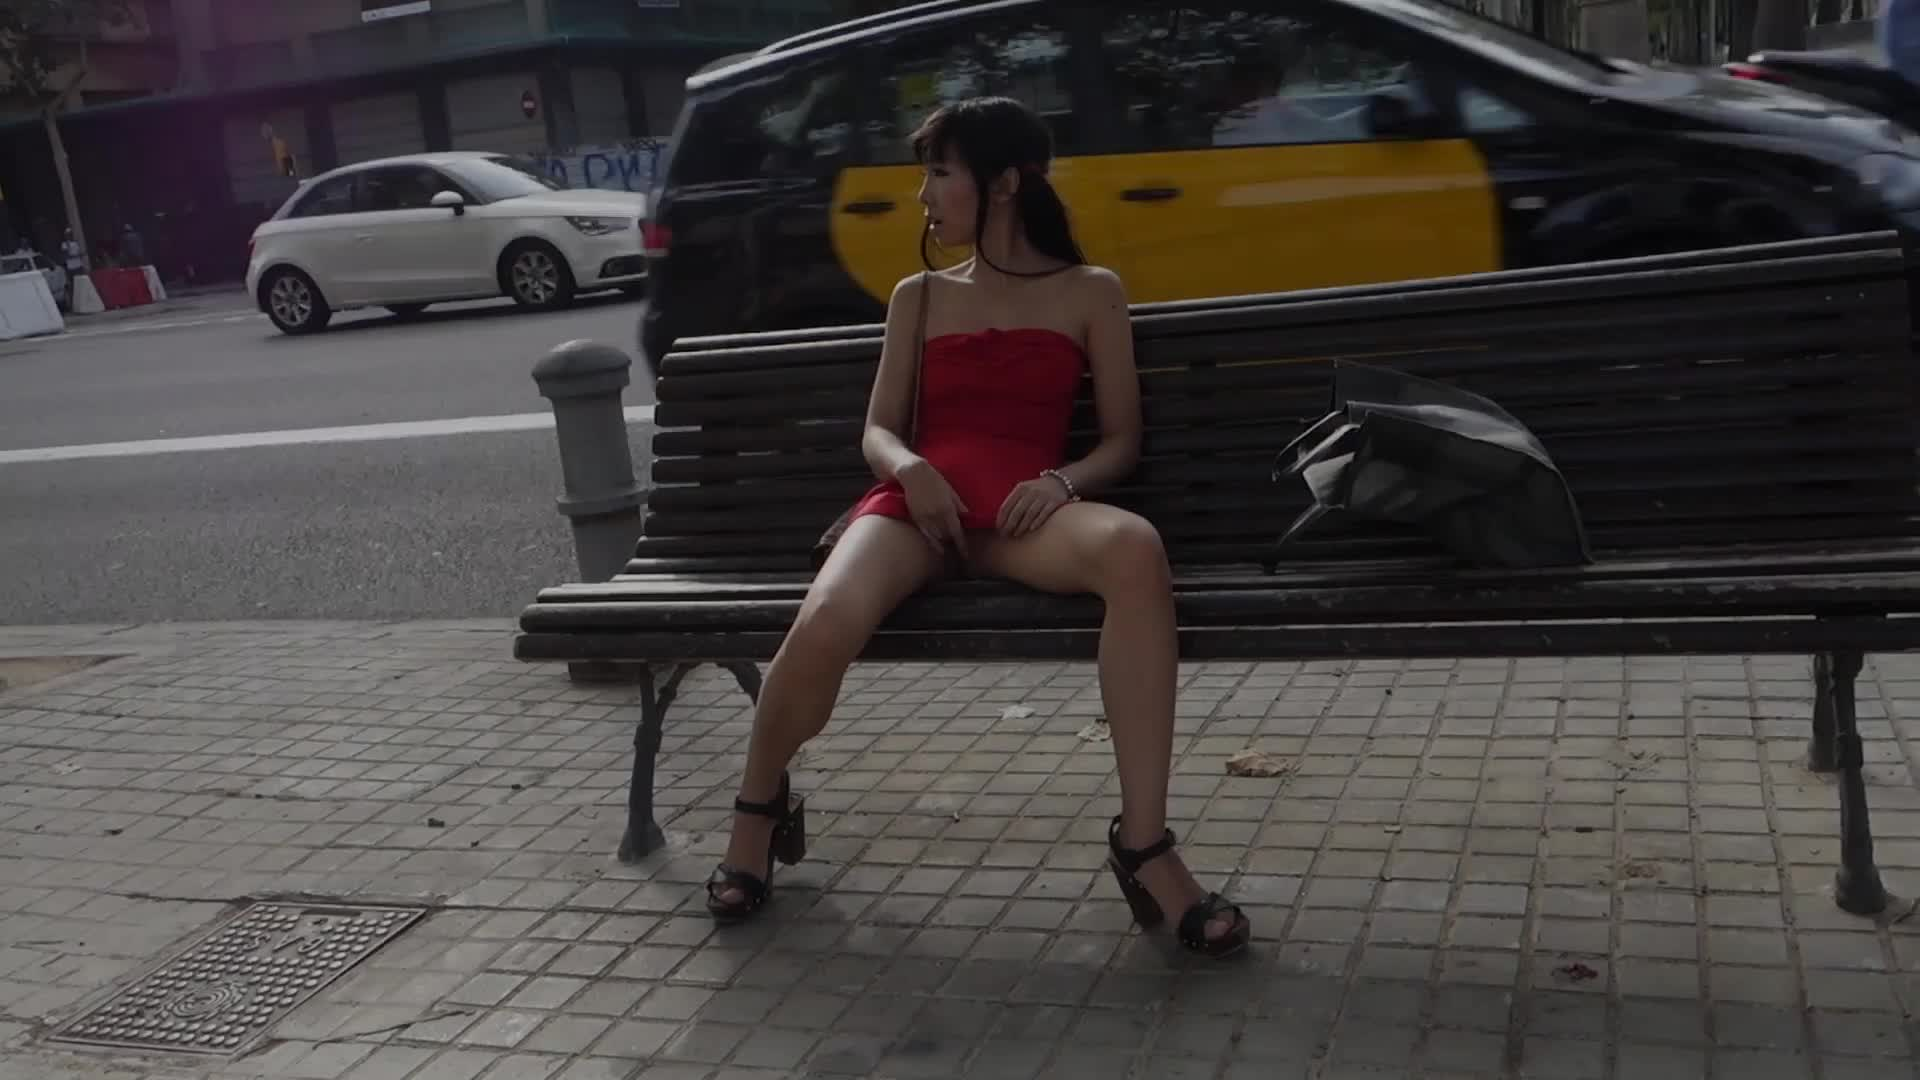 I like flashing my pussy and tits in public